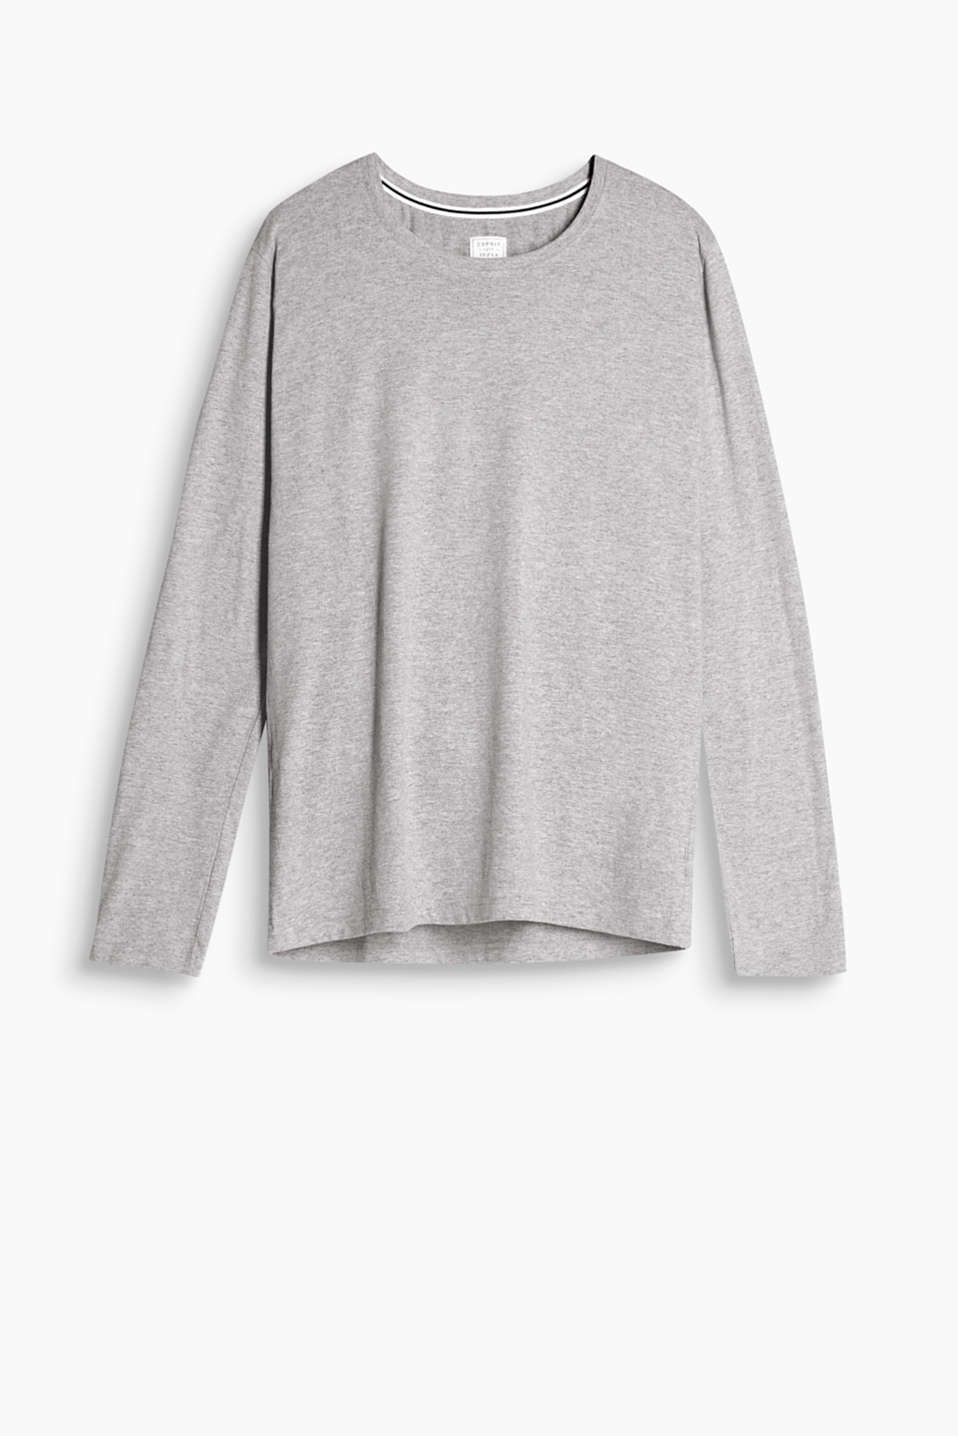 This melange long sleeve blended cotton top works perfectly with Bermudas or trousers and is delightful to wear